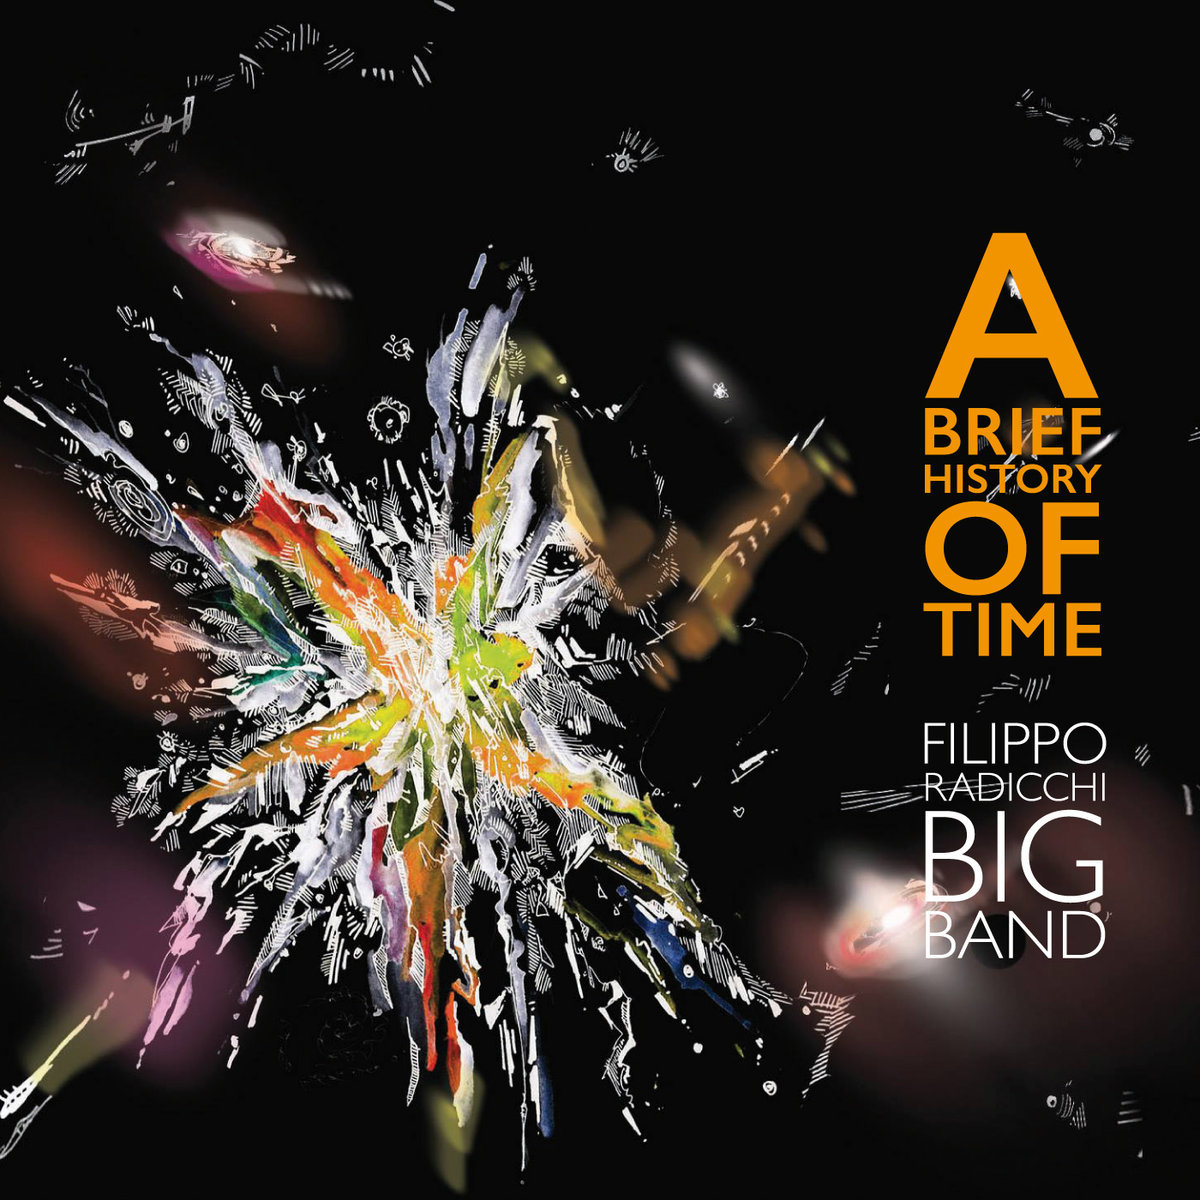 Filippo Radicchi Big Band - A Brief History Of Time